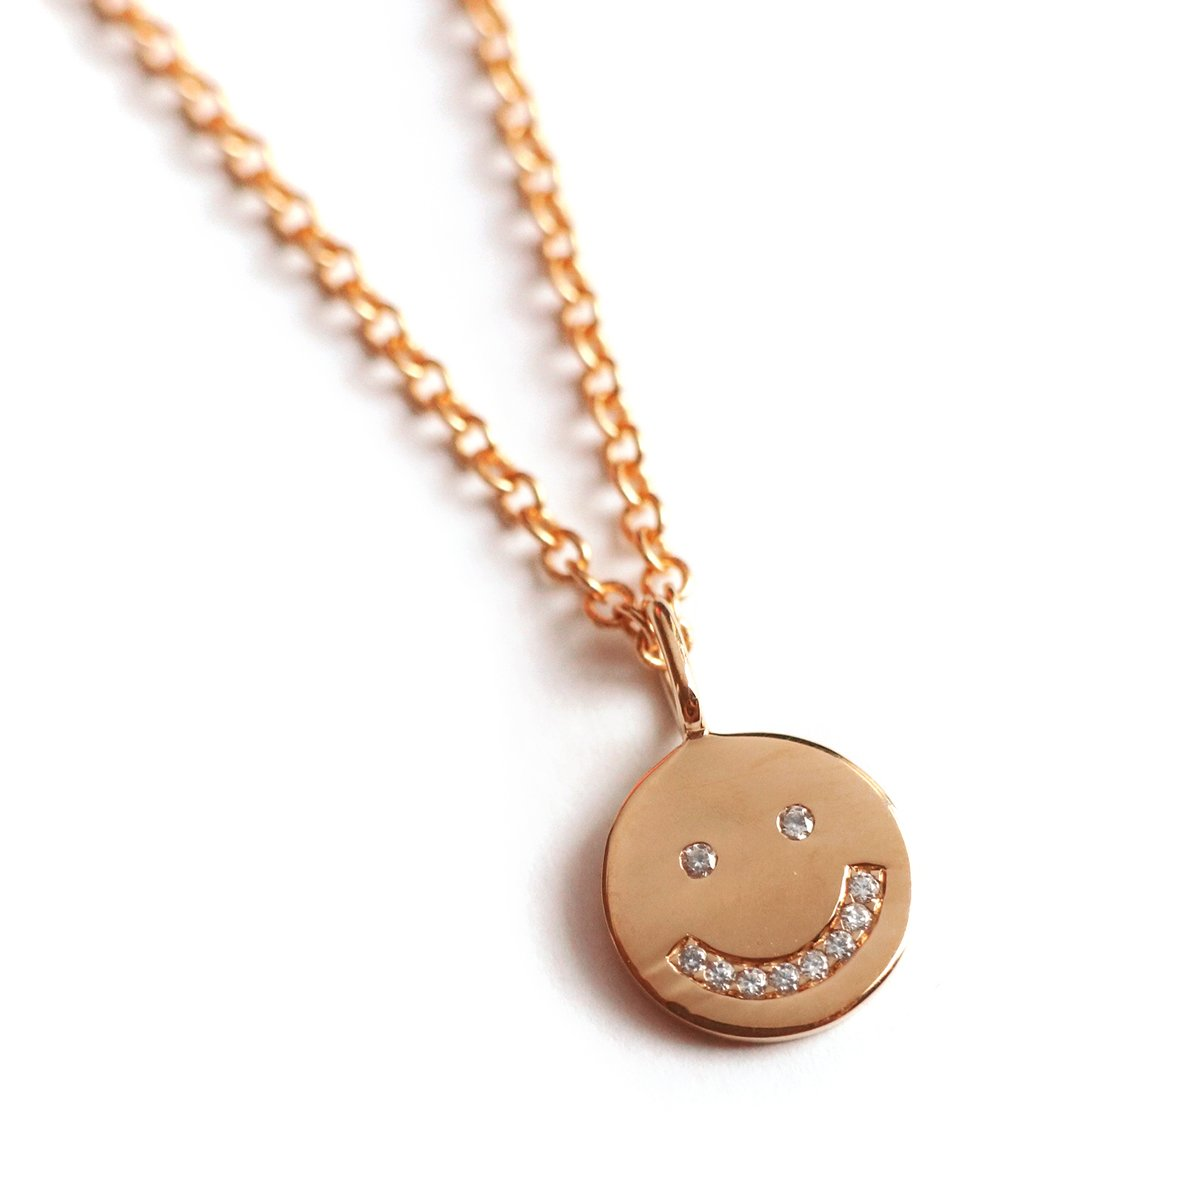 Smiling Face Necklace (Rose Gold) - Chainless Brain